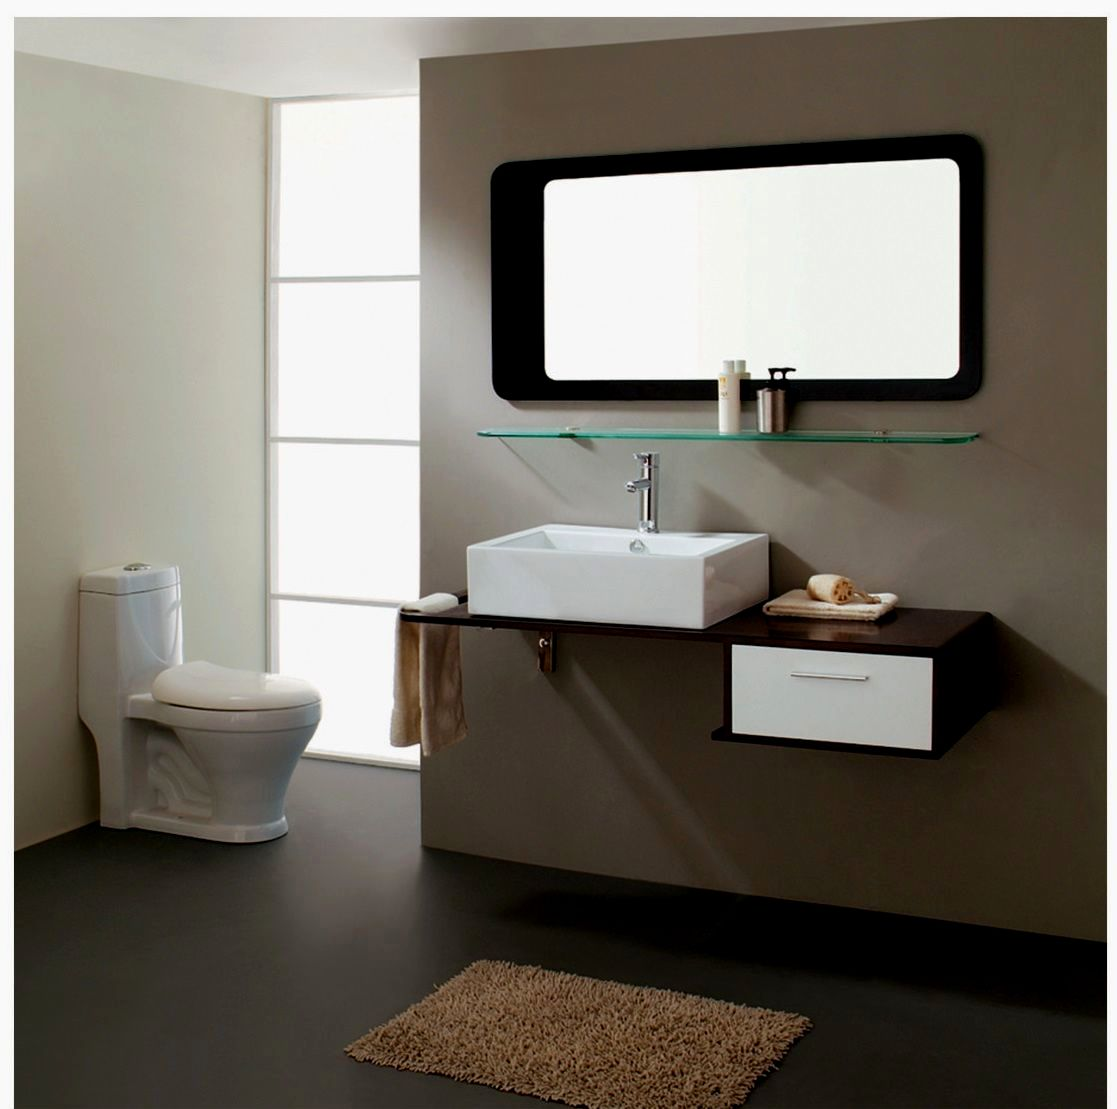 superb bathroom mirrors lowes wallpaper-Best Of Bathroom Mirrors Lowes Concept